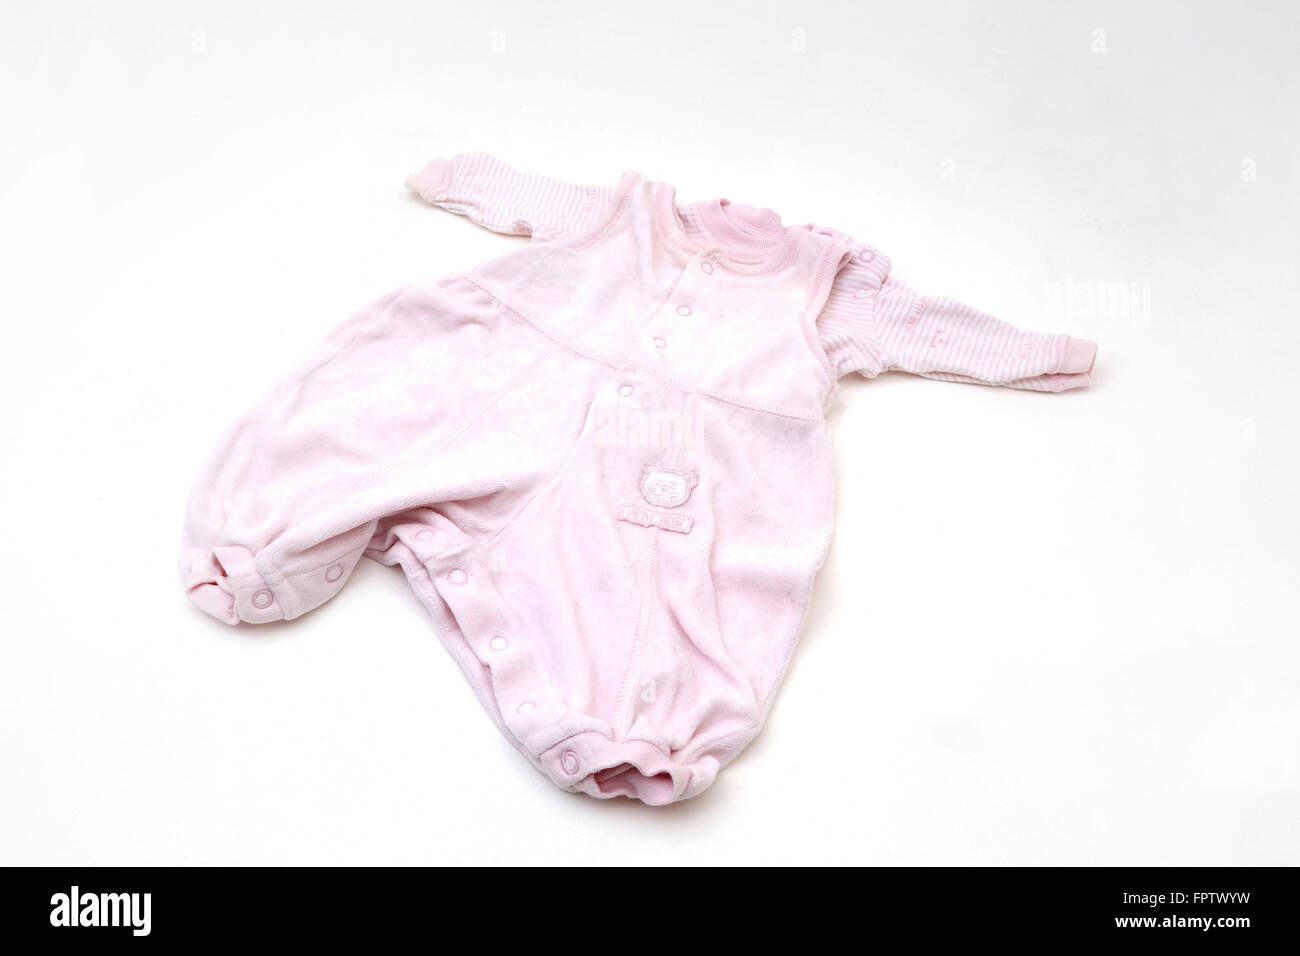 Pink Baby Grow Two Part set Rompers and Top - Stock Image